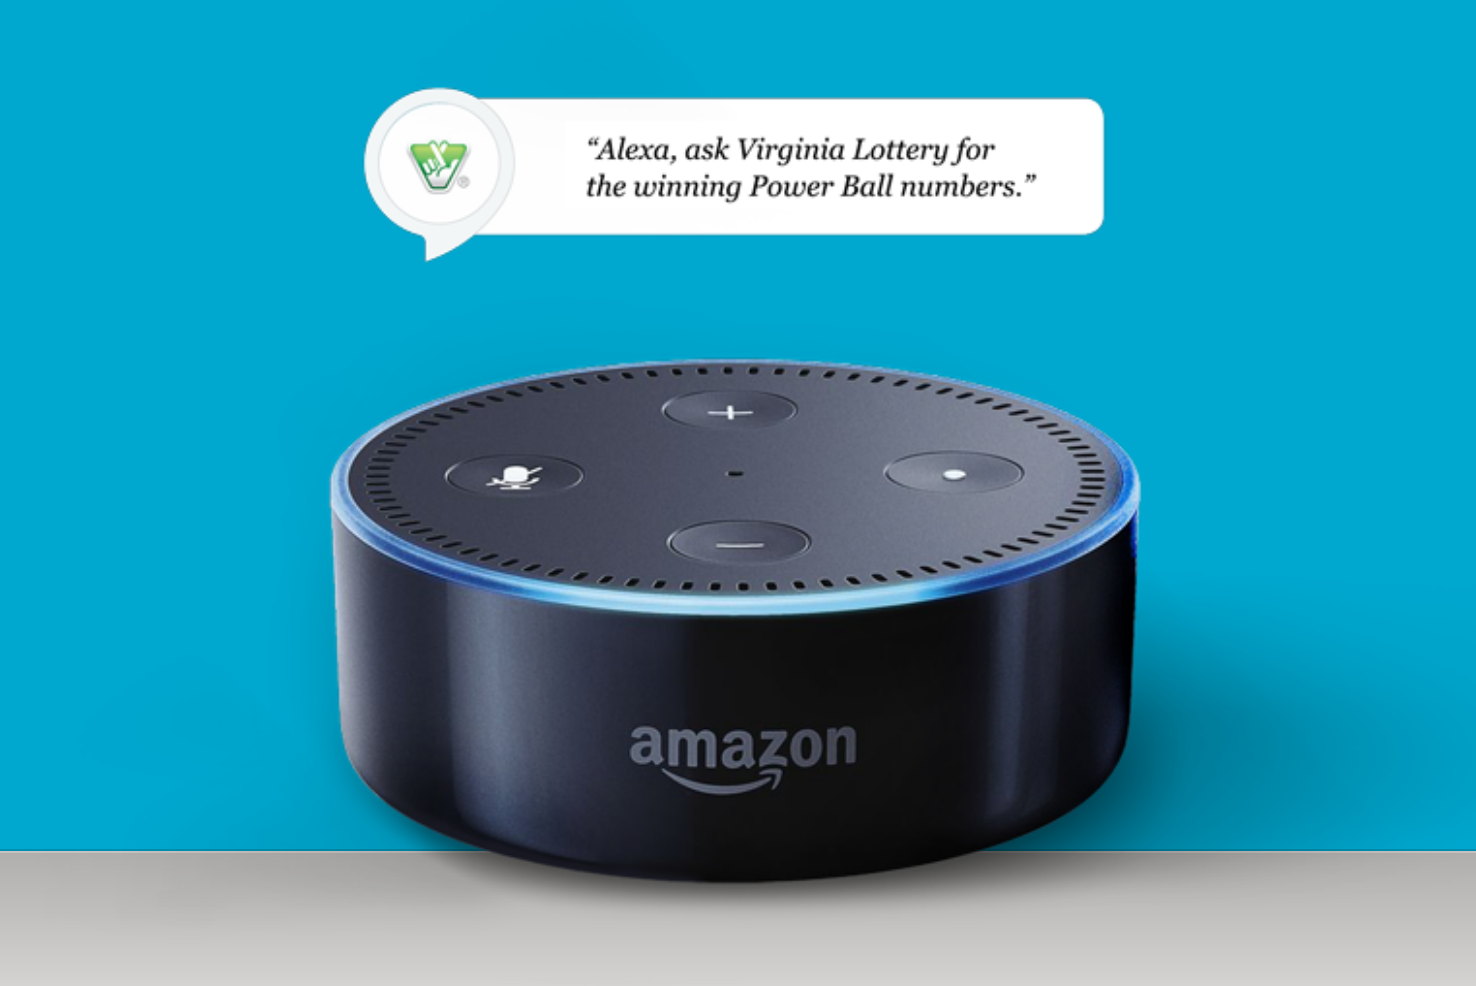 COLAB virginia lottery alexa skill